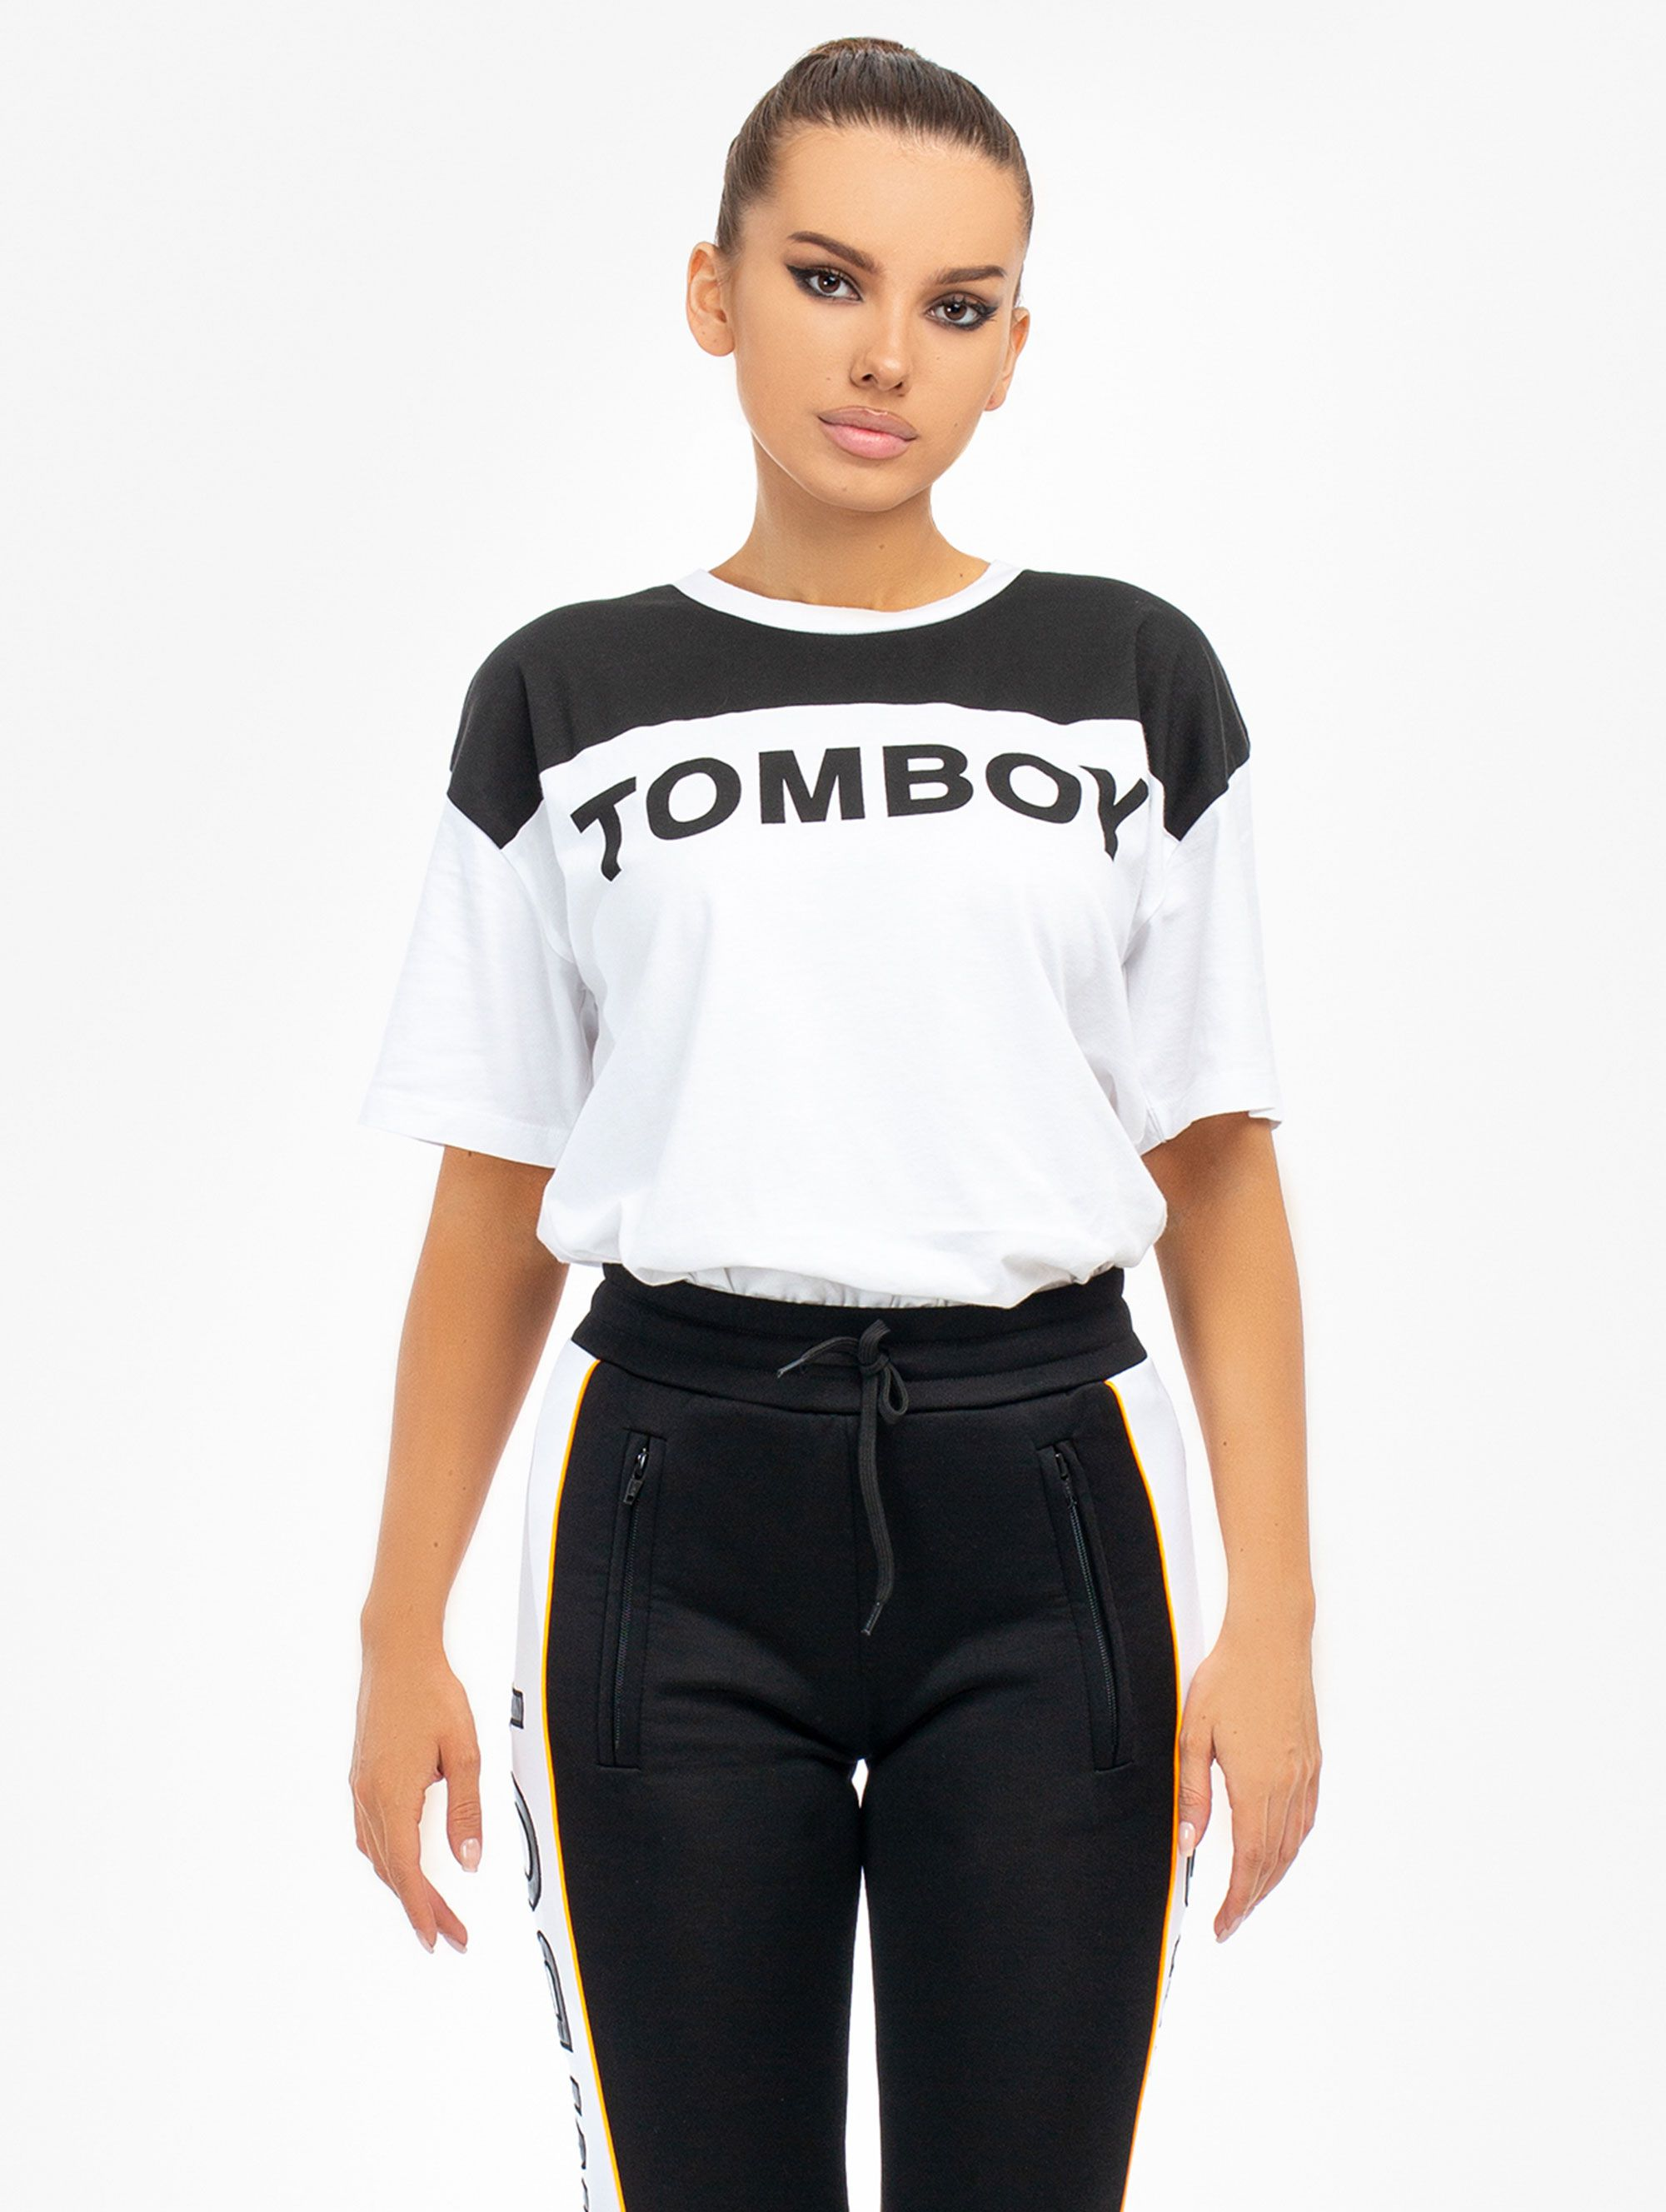 Tomboy T-Shirt in Black/White